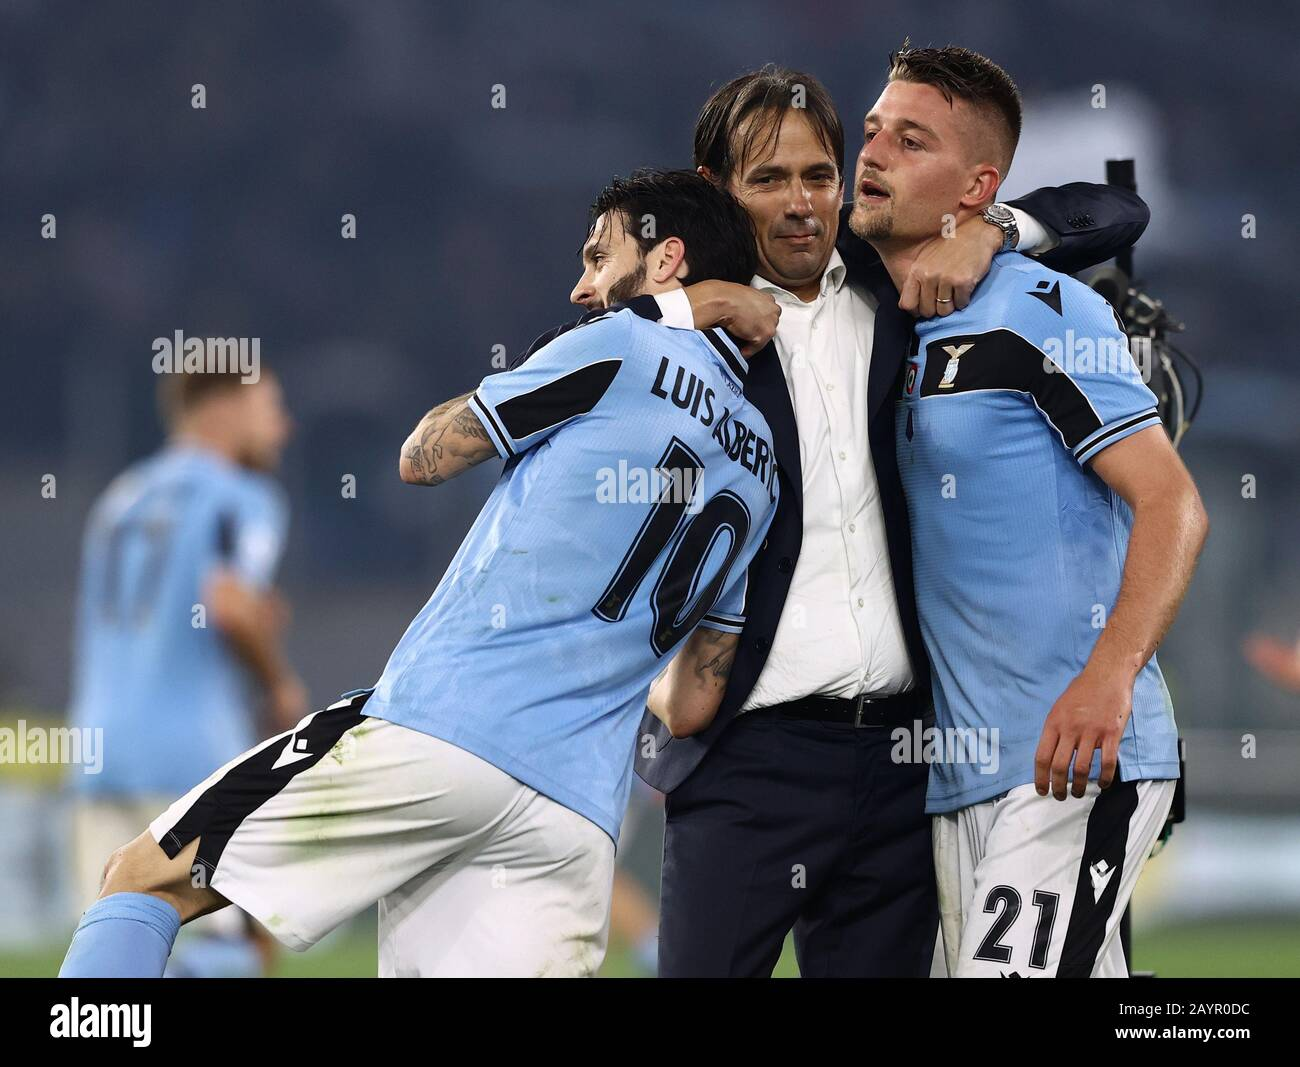 Stadio Olympico, Rome, Italy. 16th Feb, 2020. Serie A Football, Lazio  versus Inter Milan; Simone Inzaghi coach of Lazio hugs Luis Alberto and  Sergej Milinkovic Savic of Lazio after scoring Credit: Action